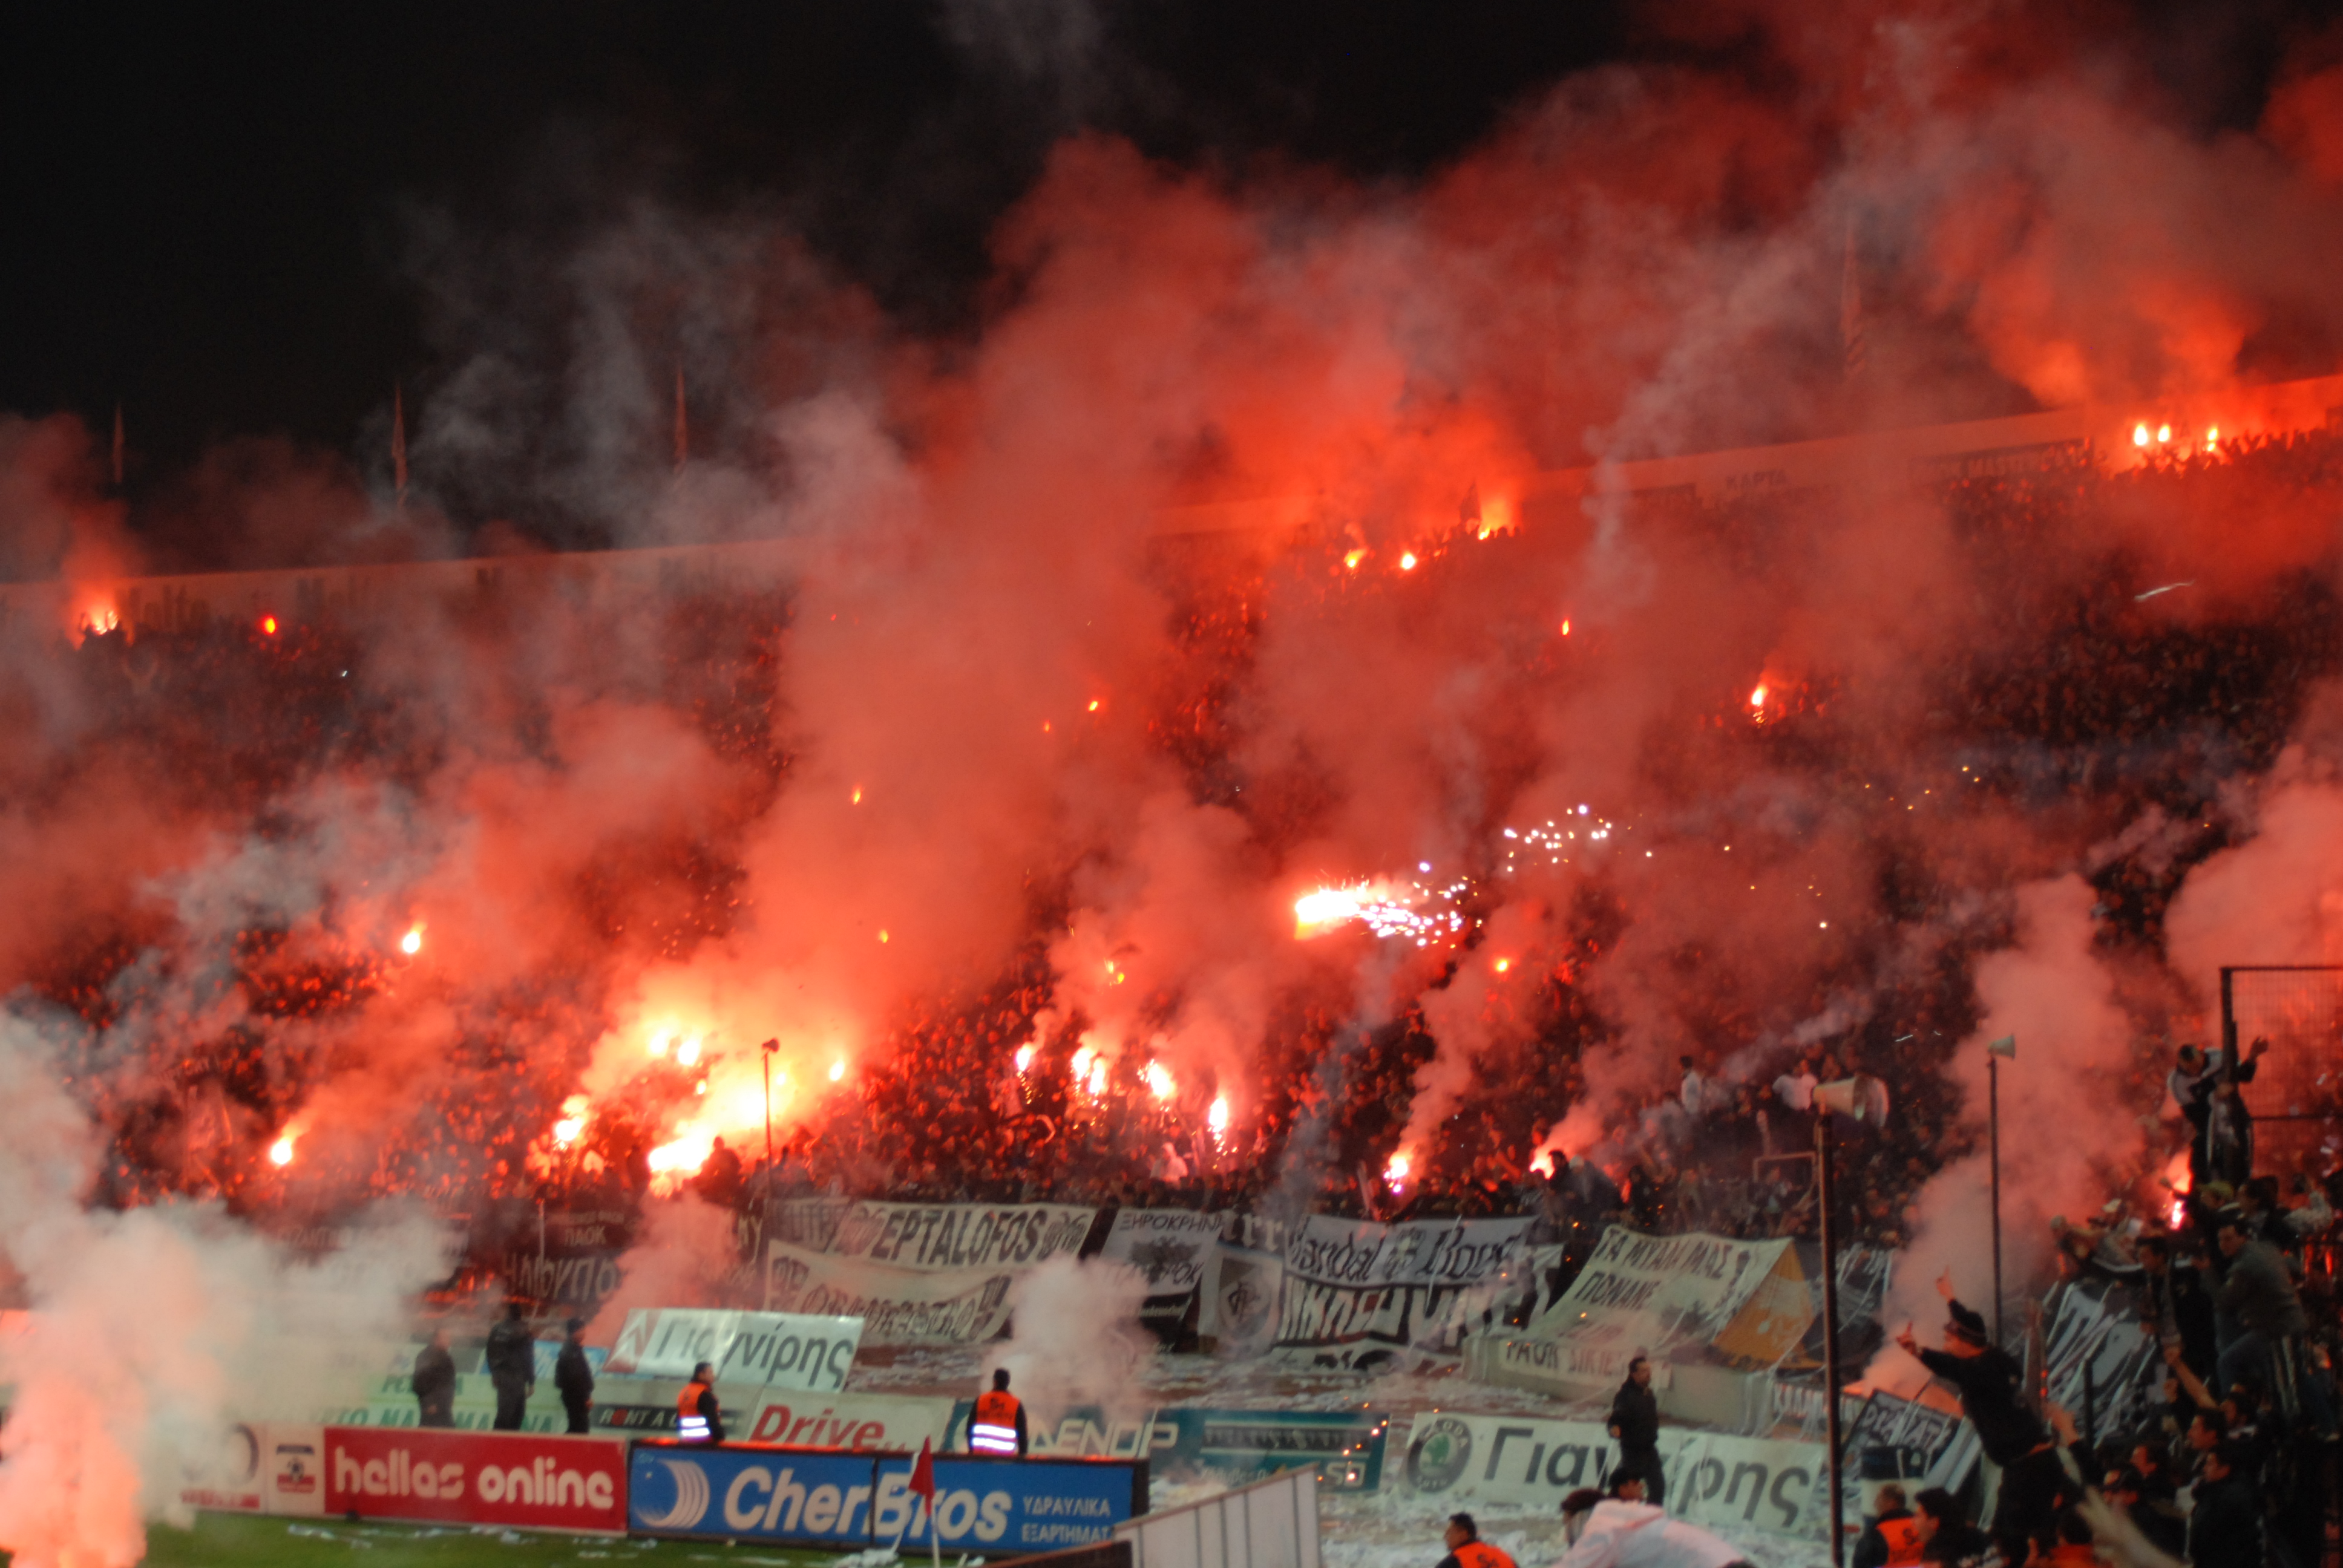 Ultras supporters for Paok salonique